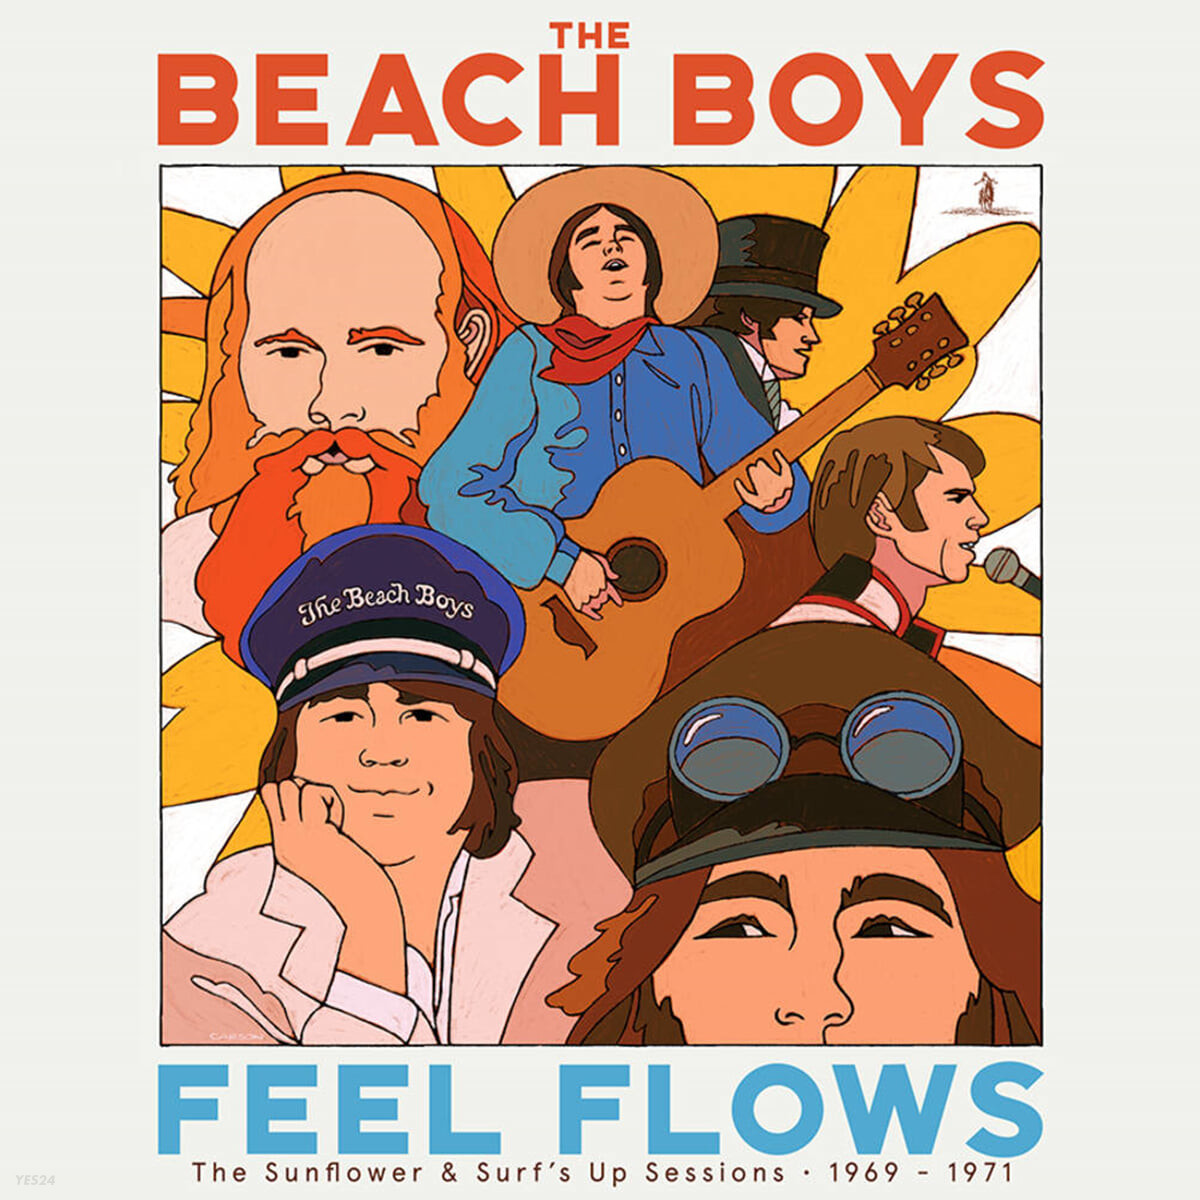 The Beach Boys (비치 보이스) - Feel Flows: The Sunflower & Surf's Up Sessions 1969-1971 [2LP]